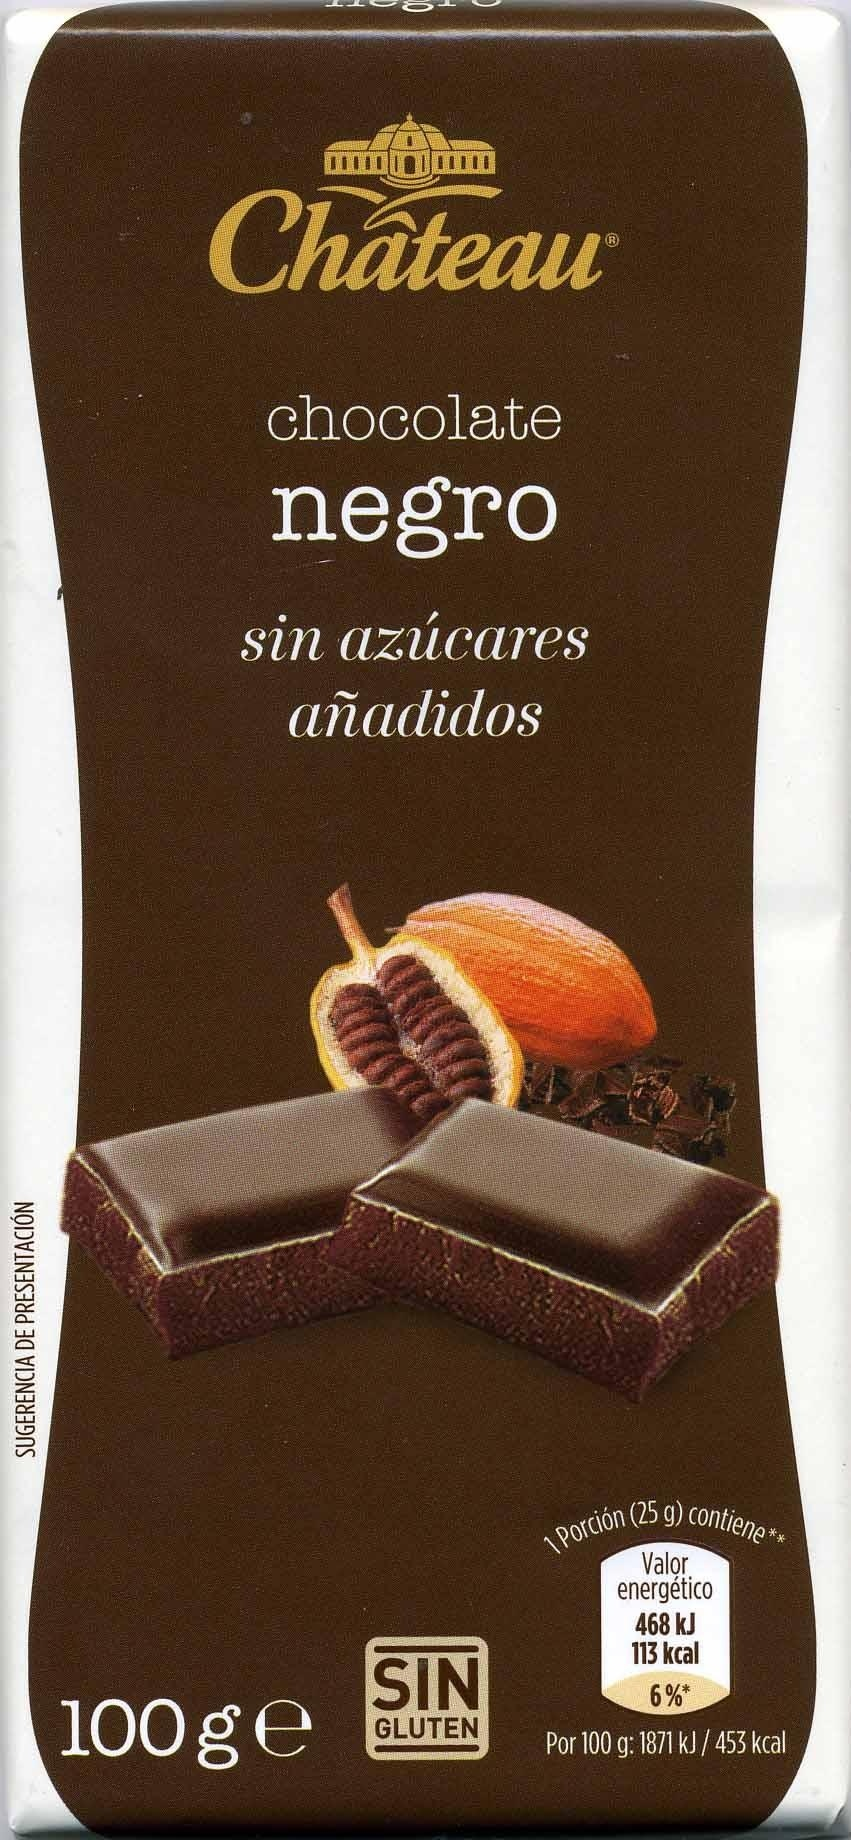 chocolate-negro-chateau